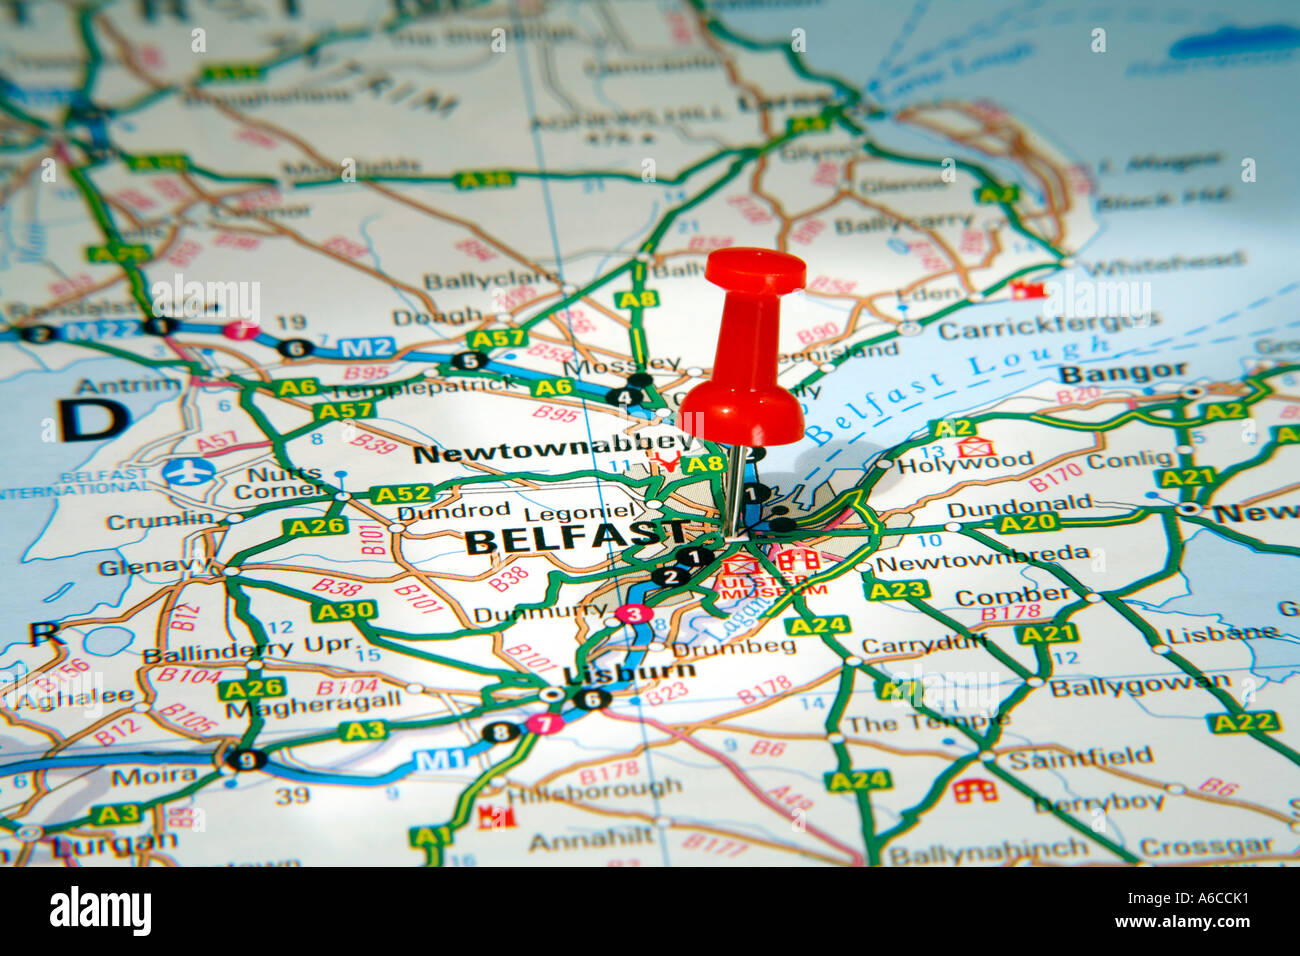 Map Pin pointing to Belfast , Northern Ireland on a road map Stock